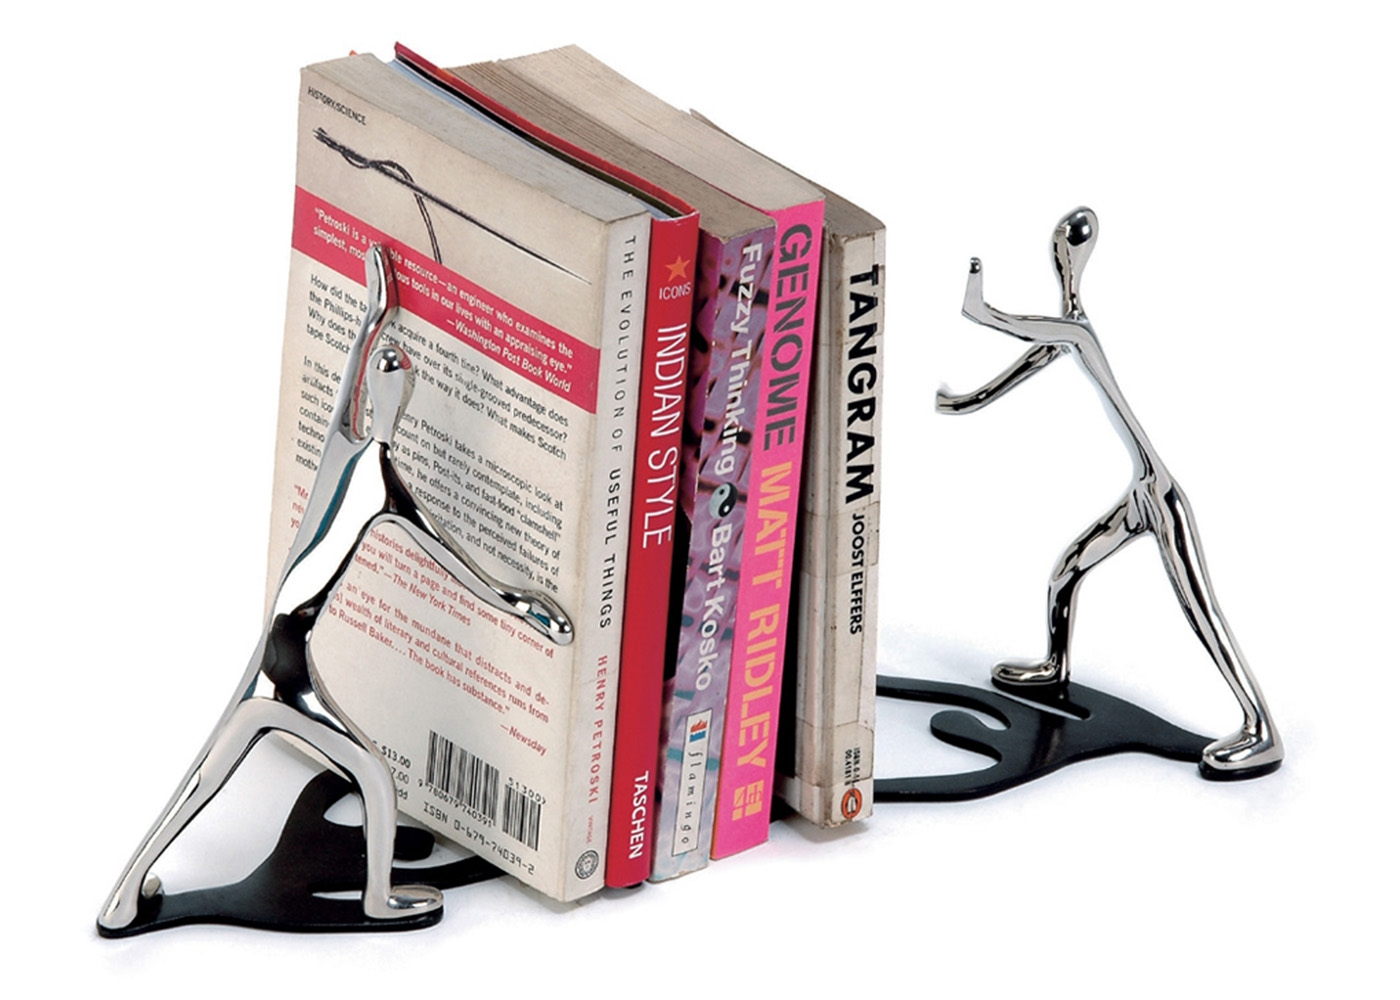 serre livres d coratif en laiton chrom id par mukul goyal. Black Bedroom Furniture Sets. Home Design Ideas